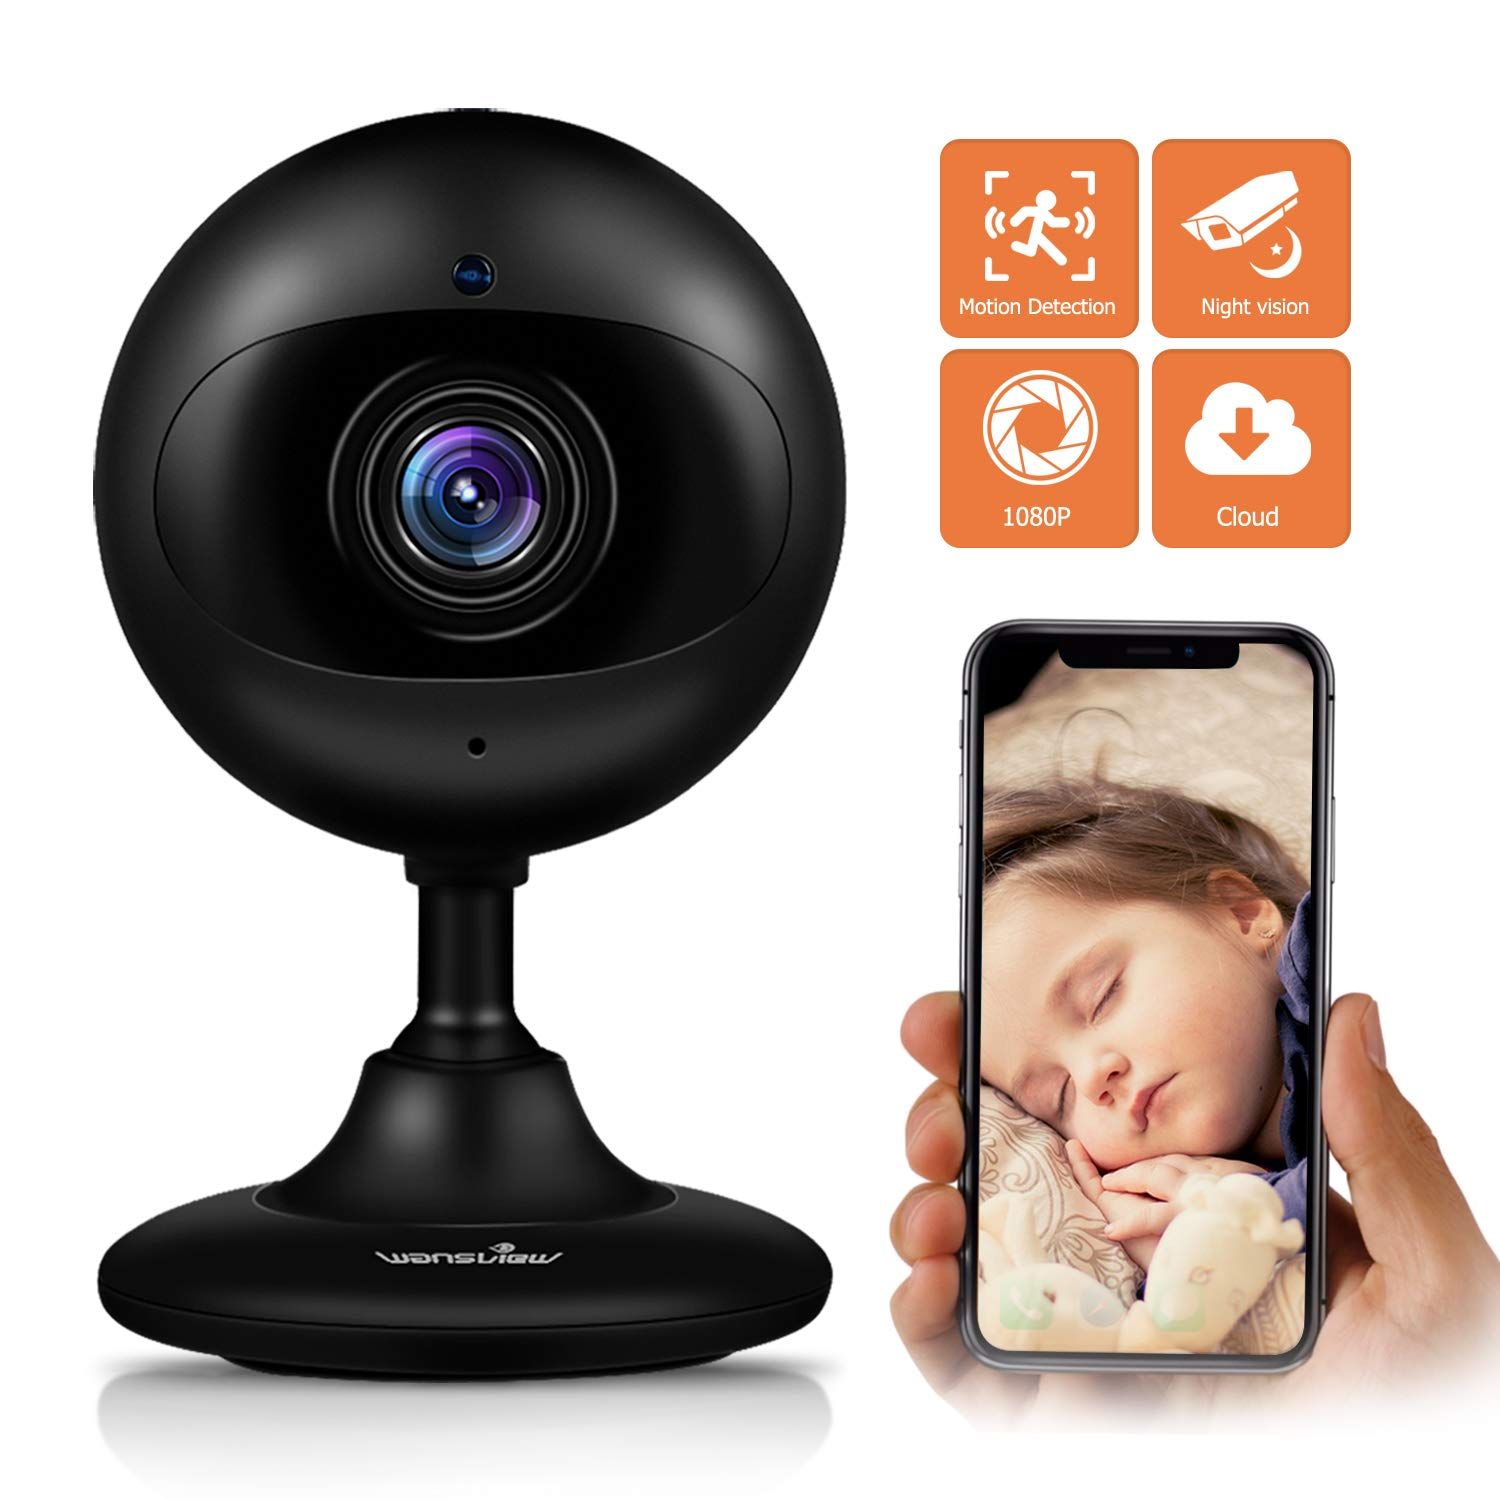 Wansview Wireless Security Camera, 1080P HD WiFi Home Indoor IP Camera with  Motion Detection, Night Vision and Two-Way Audio for Baby/Elder/Pet/Nanny-